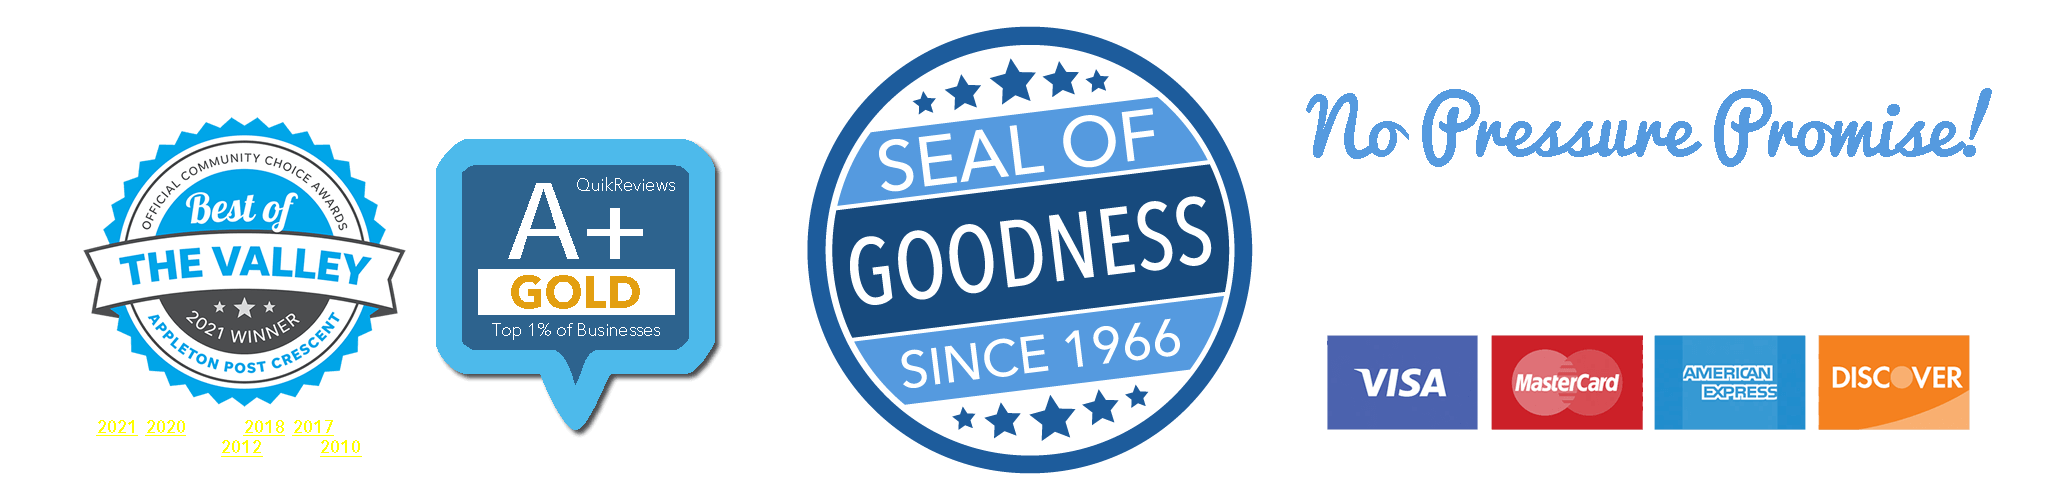 Award Winning Customer Service, Seal of Goodness Guarantee since 1966. No Pressure Promise! We do not utilize any high pressure tactics in our sales process, ever.